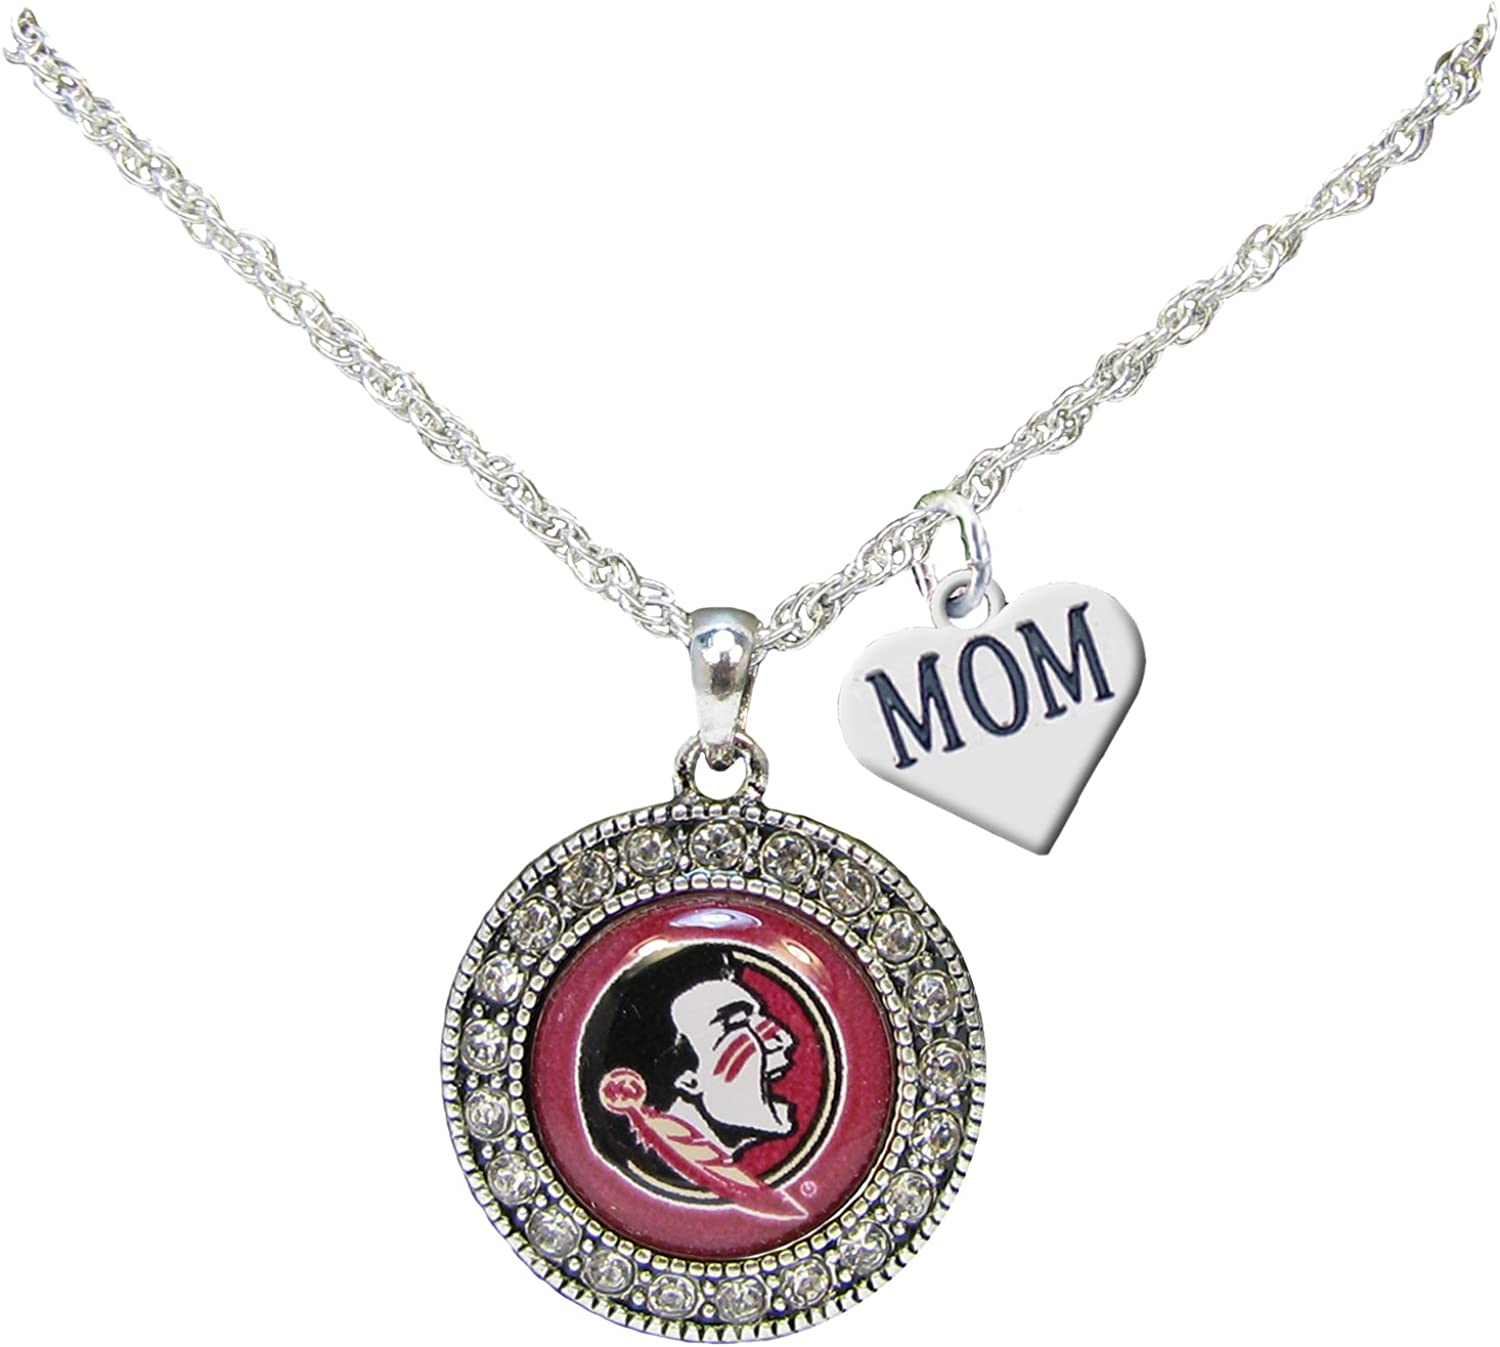 16-20 Mireval Sterling Silver Antiqued Florida State Charm on a Sterling Silver Chain Necklace